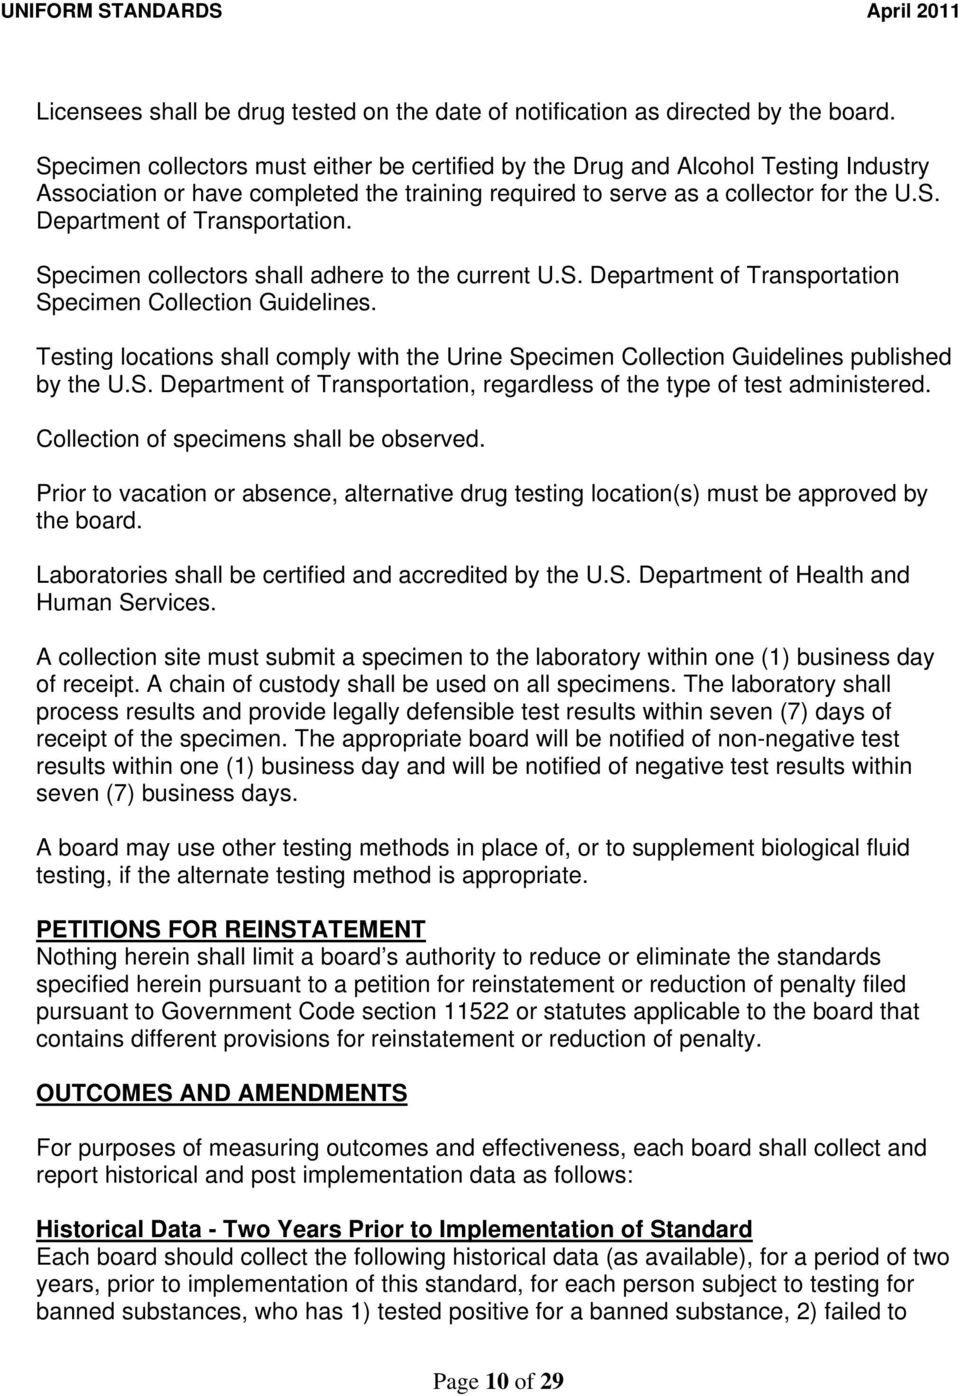 Specimen collectors shall adhere to the current U.S. Department of Transportation Specimen Collection Guidelines.